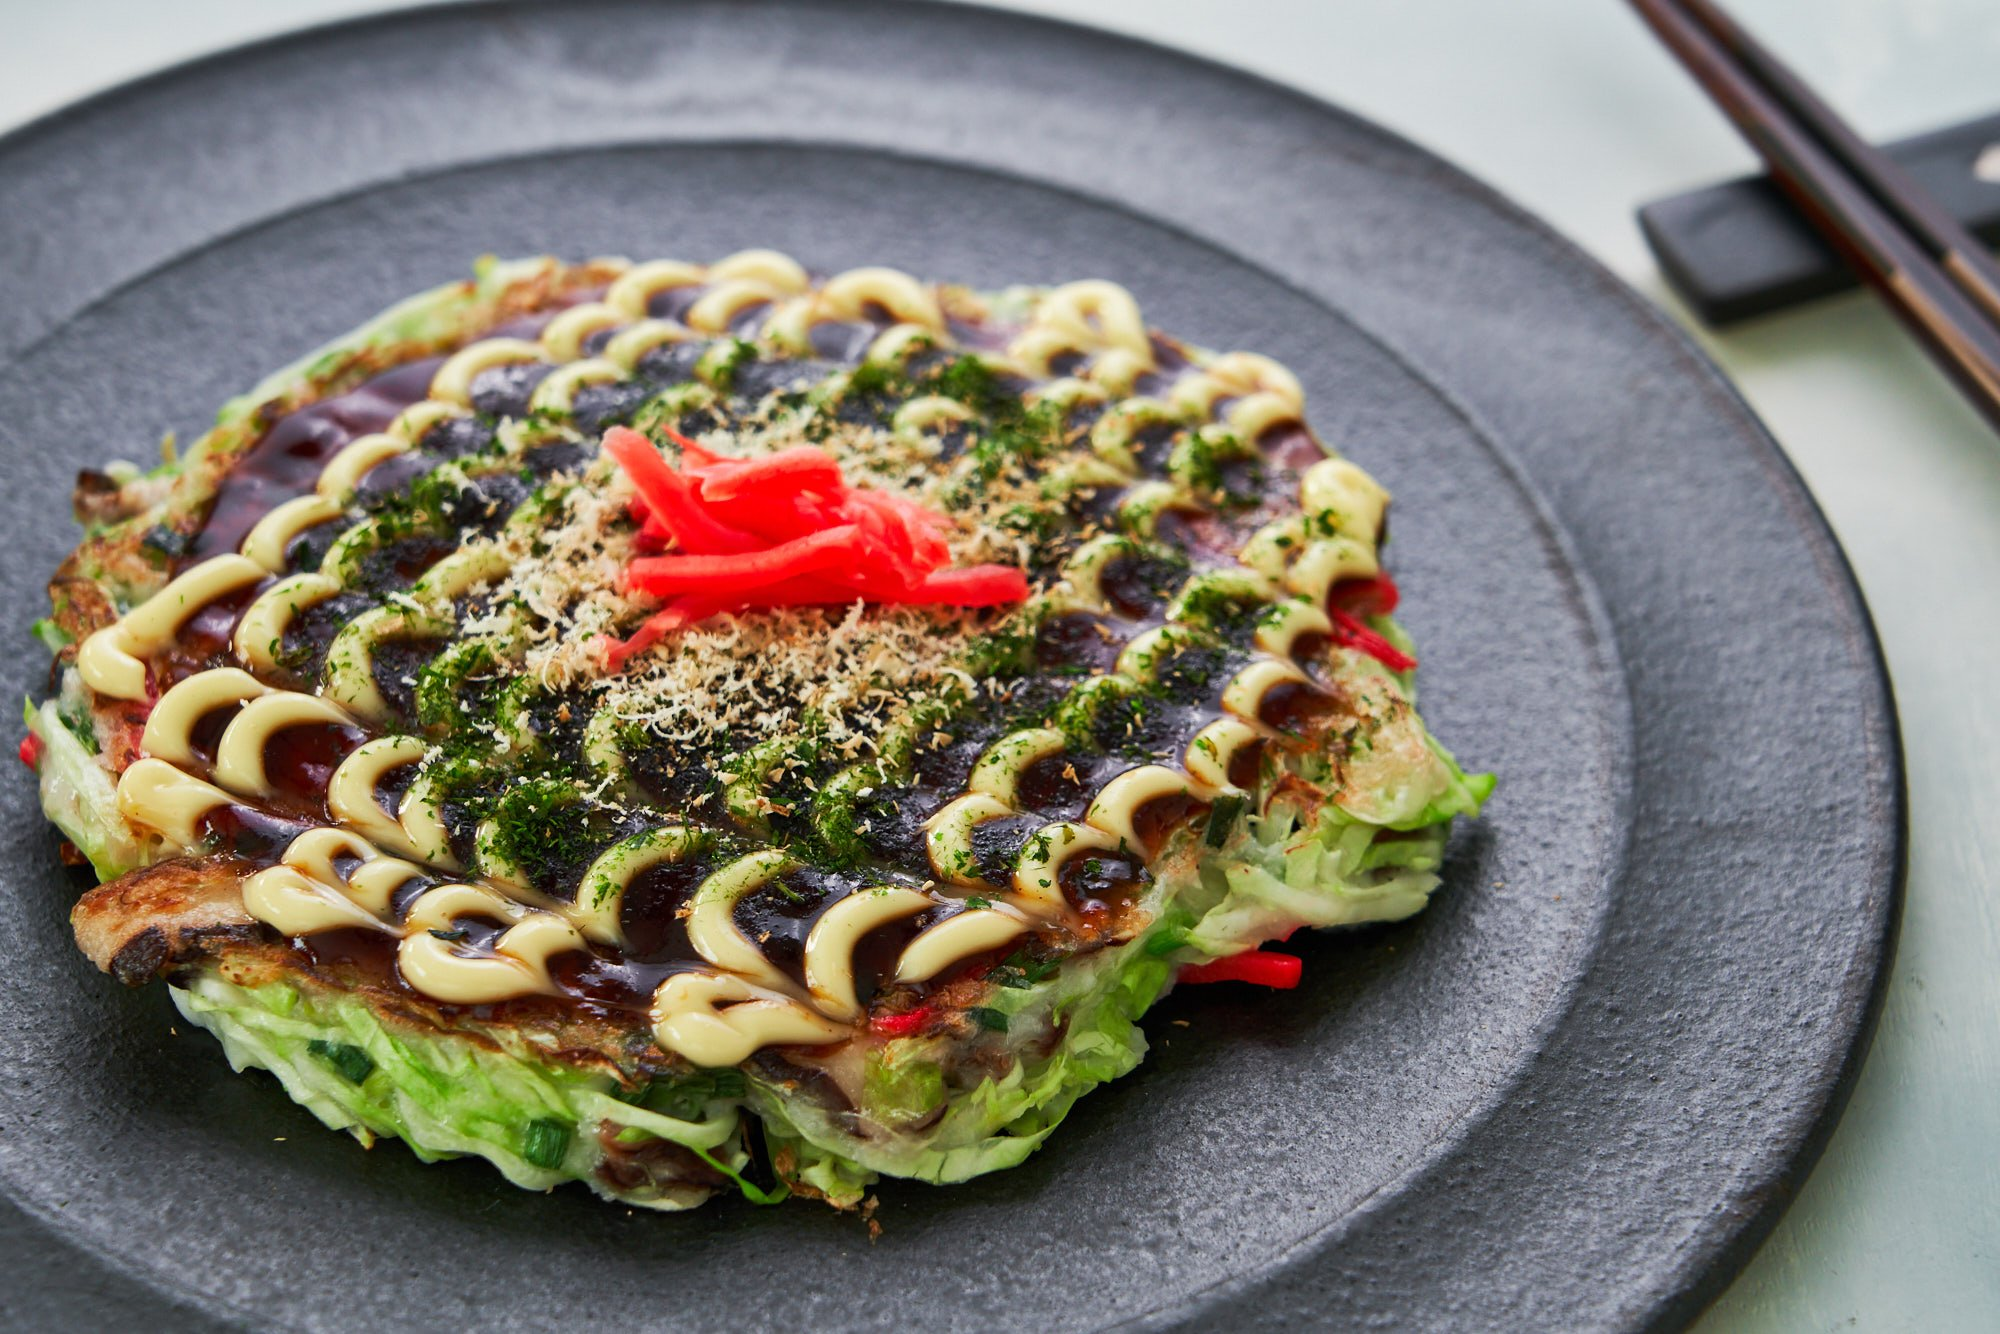 Okonomiyaki is a savory Japanese pancake that's made with a cabbage-based batter and it can be customized like a pizza with your favorite mix-ins and toppings.